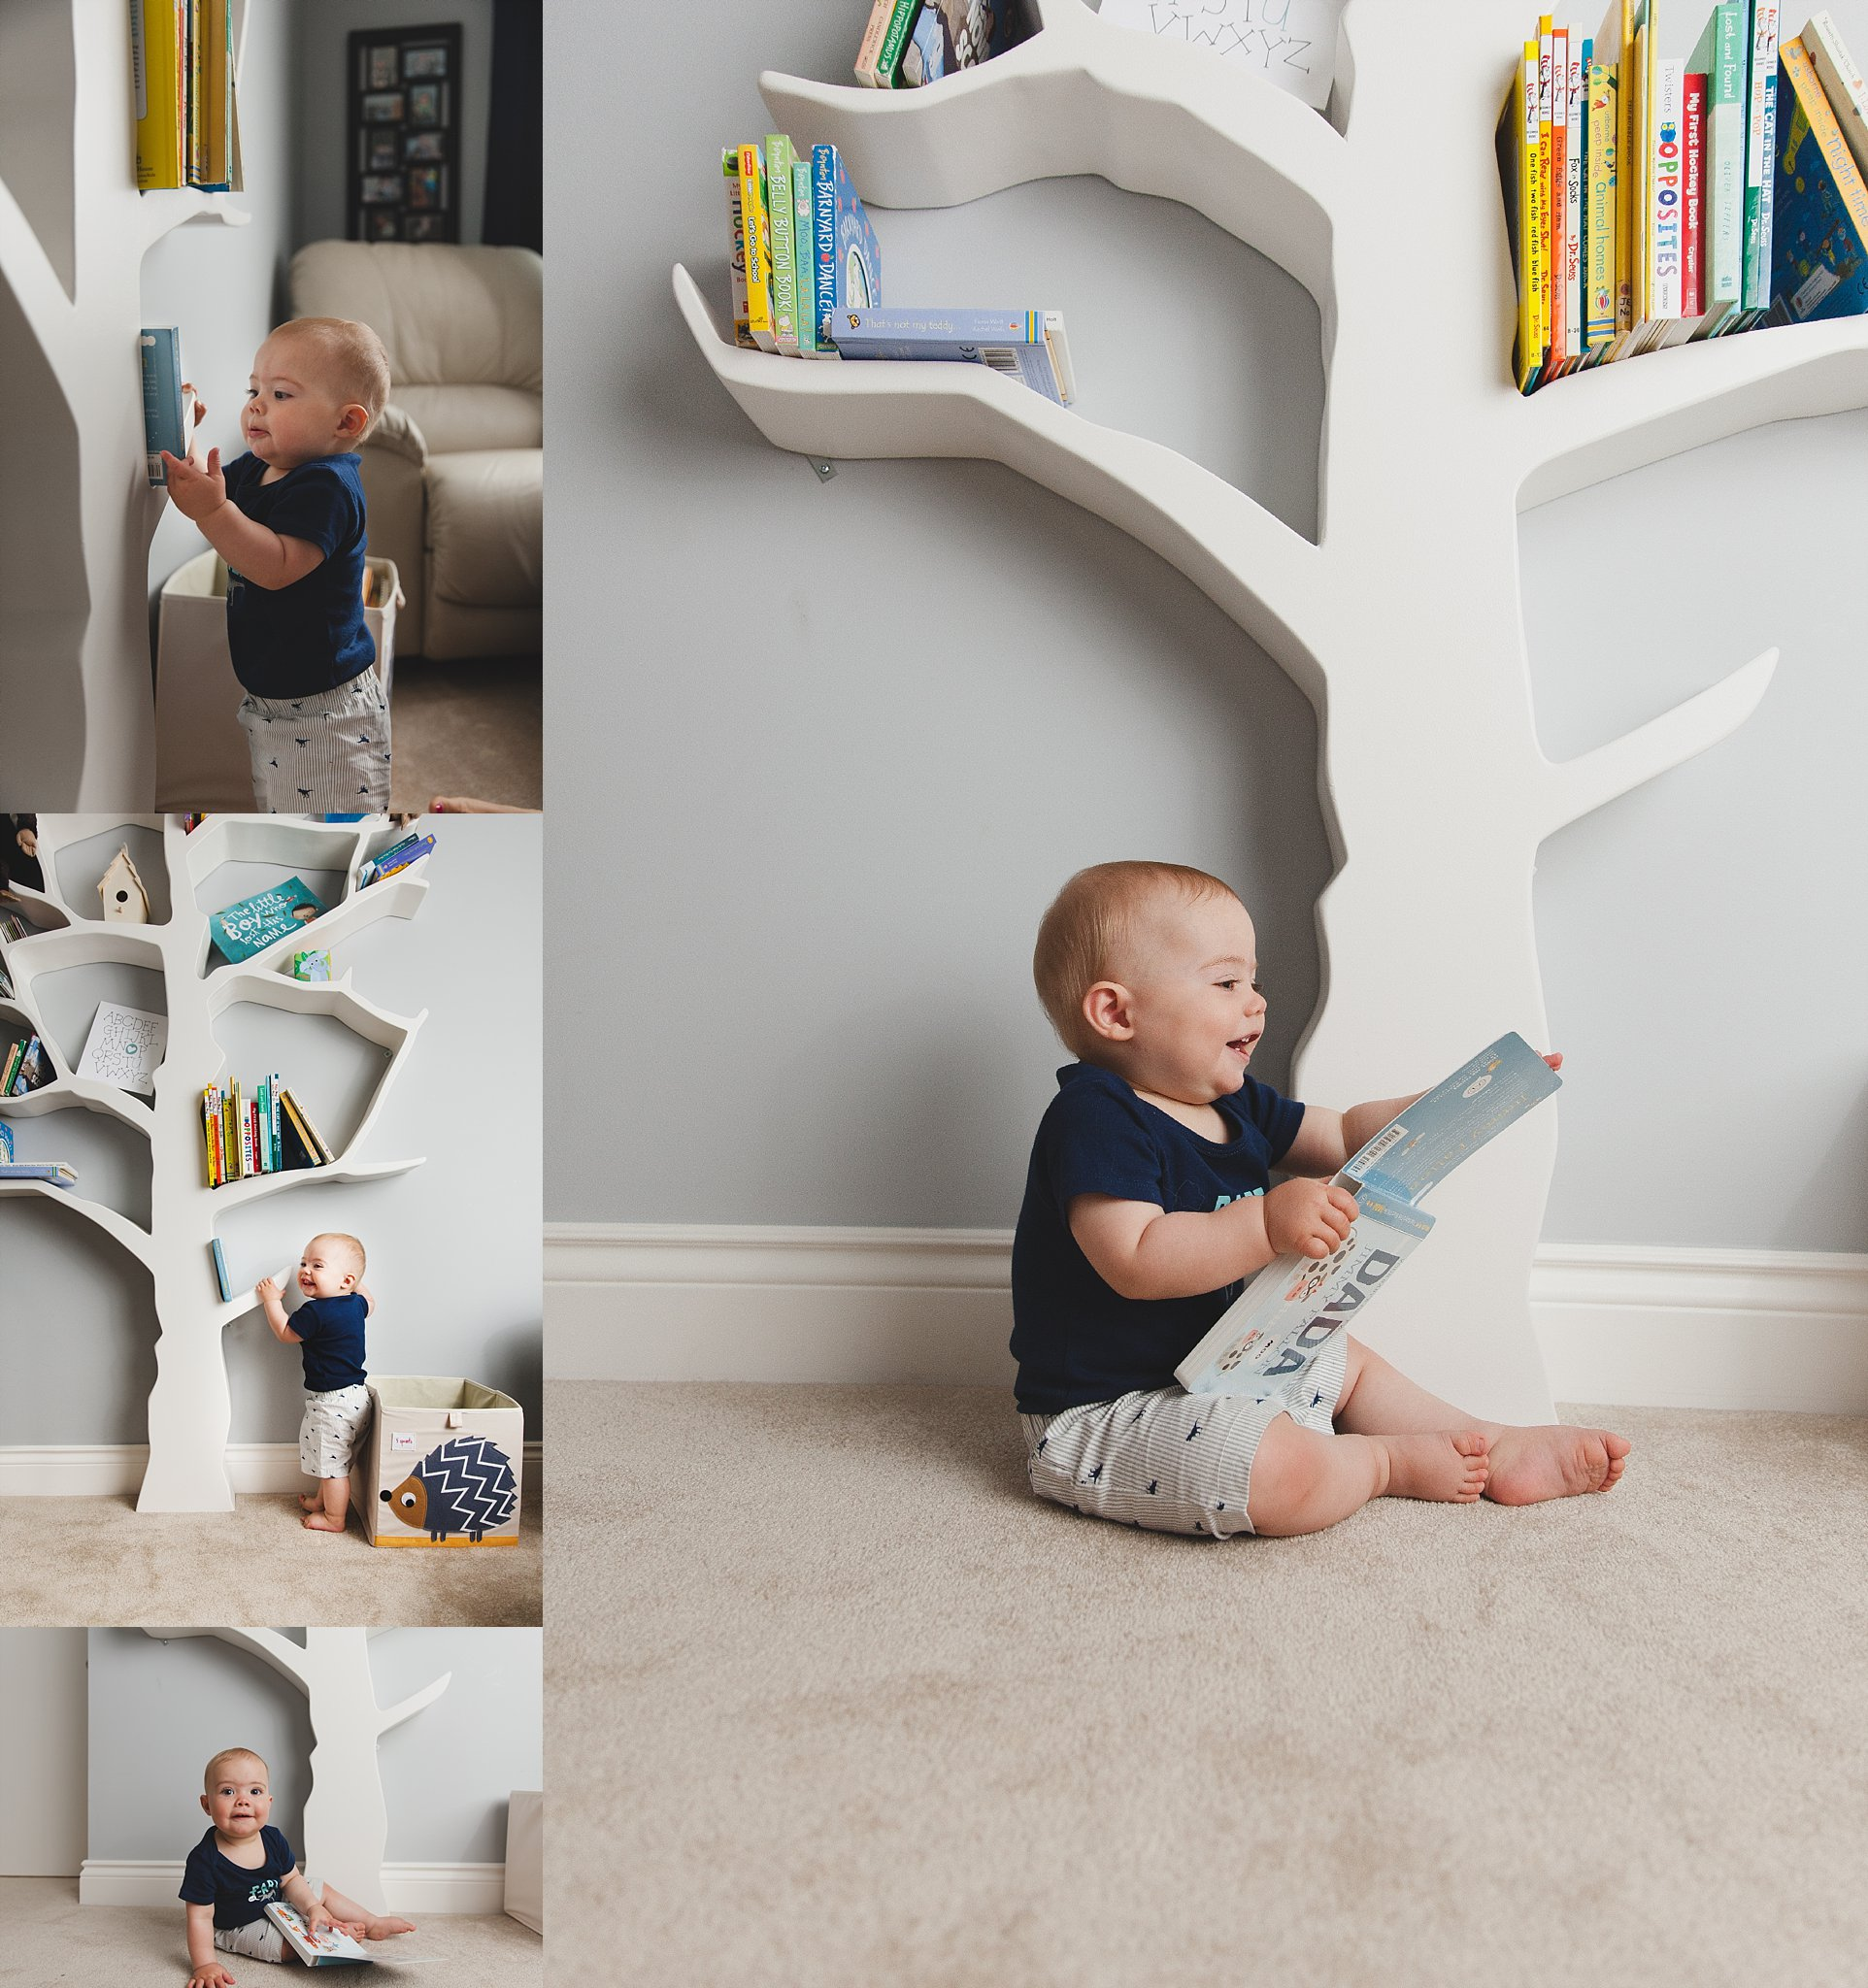 Baby Boy reading book next to tree bookshelf. Photographed near Woodstock, ON  by Rachael Little Photography.